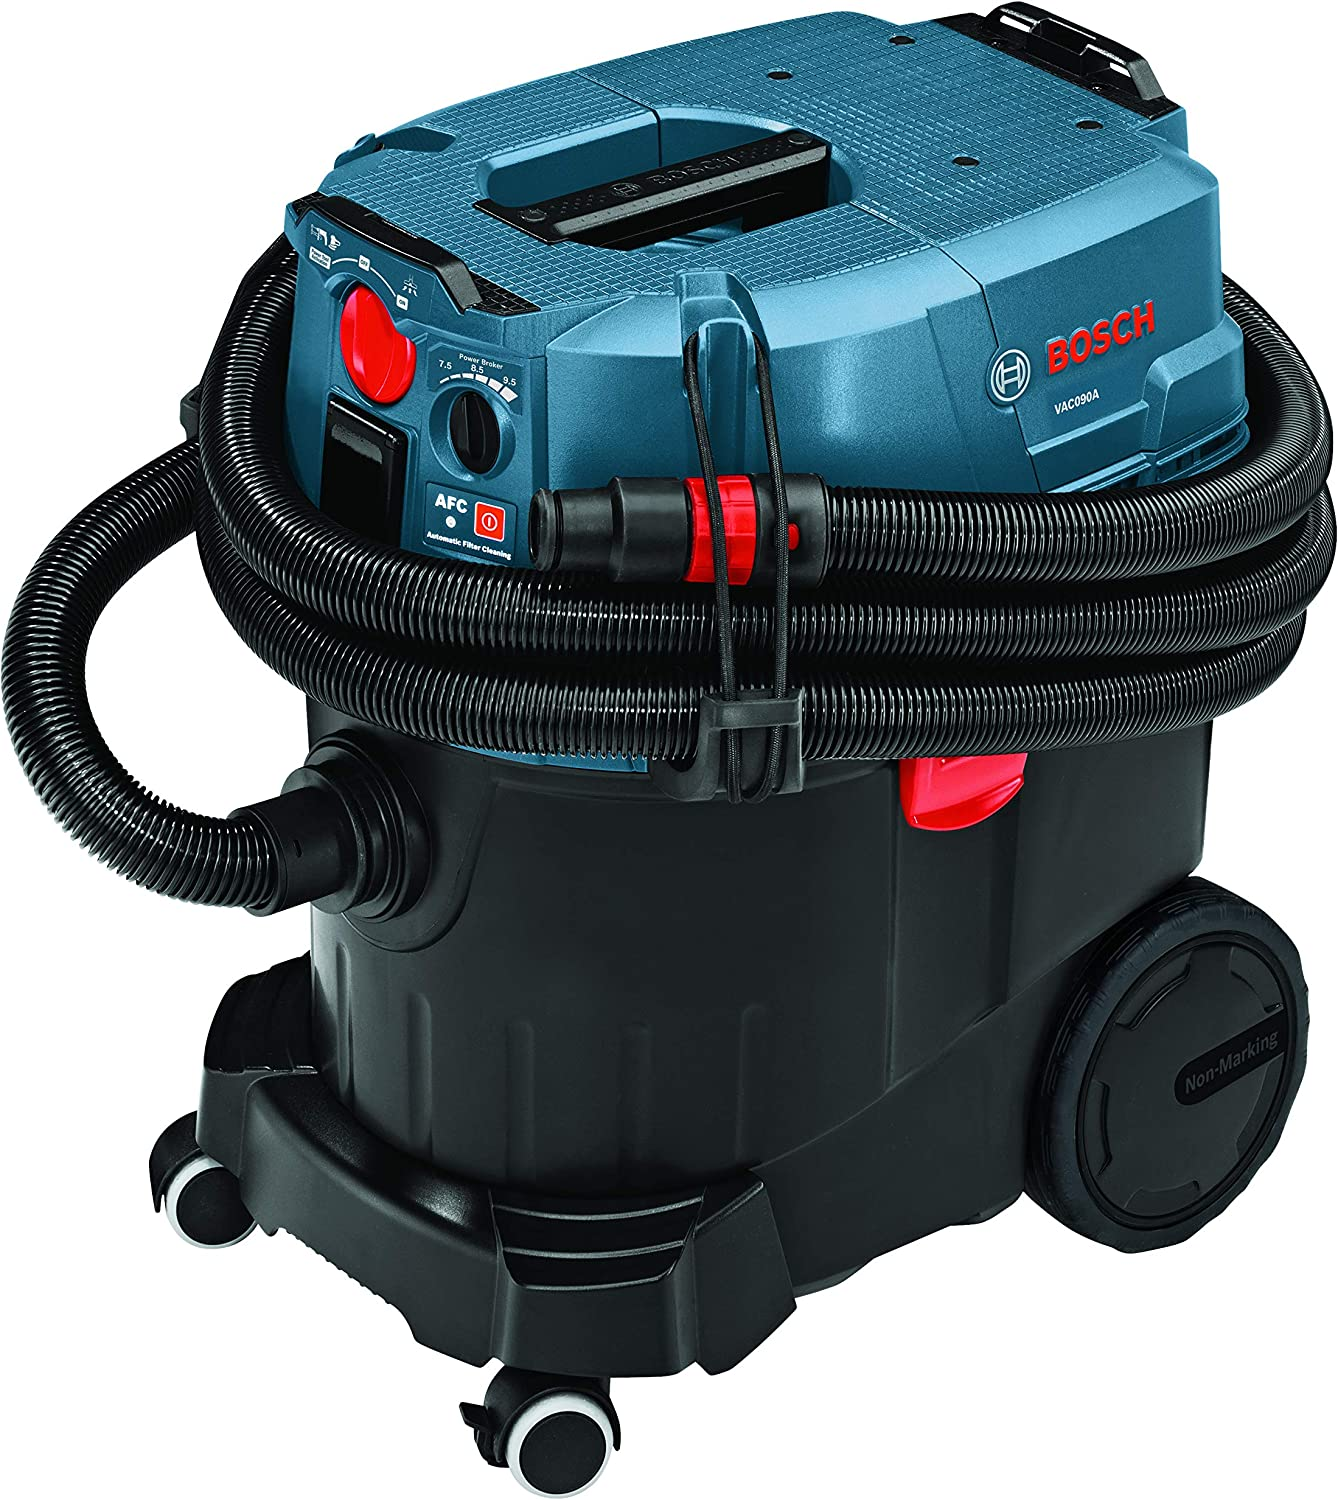 Bosch 9 Gallon Dust Extractor with Auto Filter Clean and...